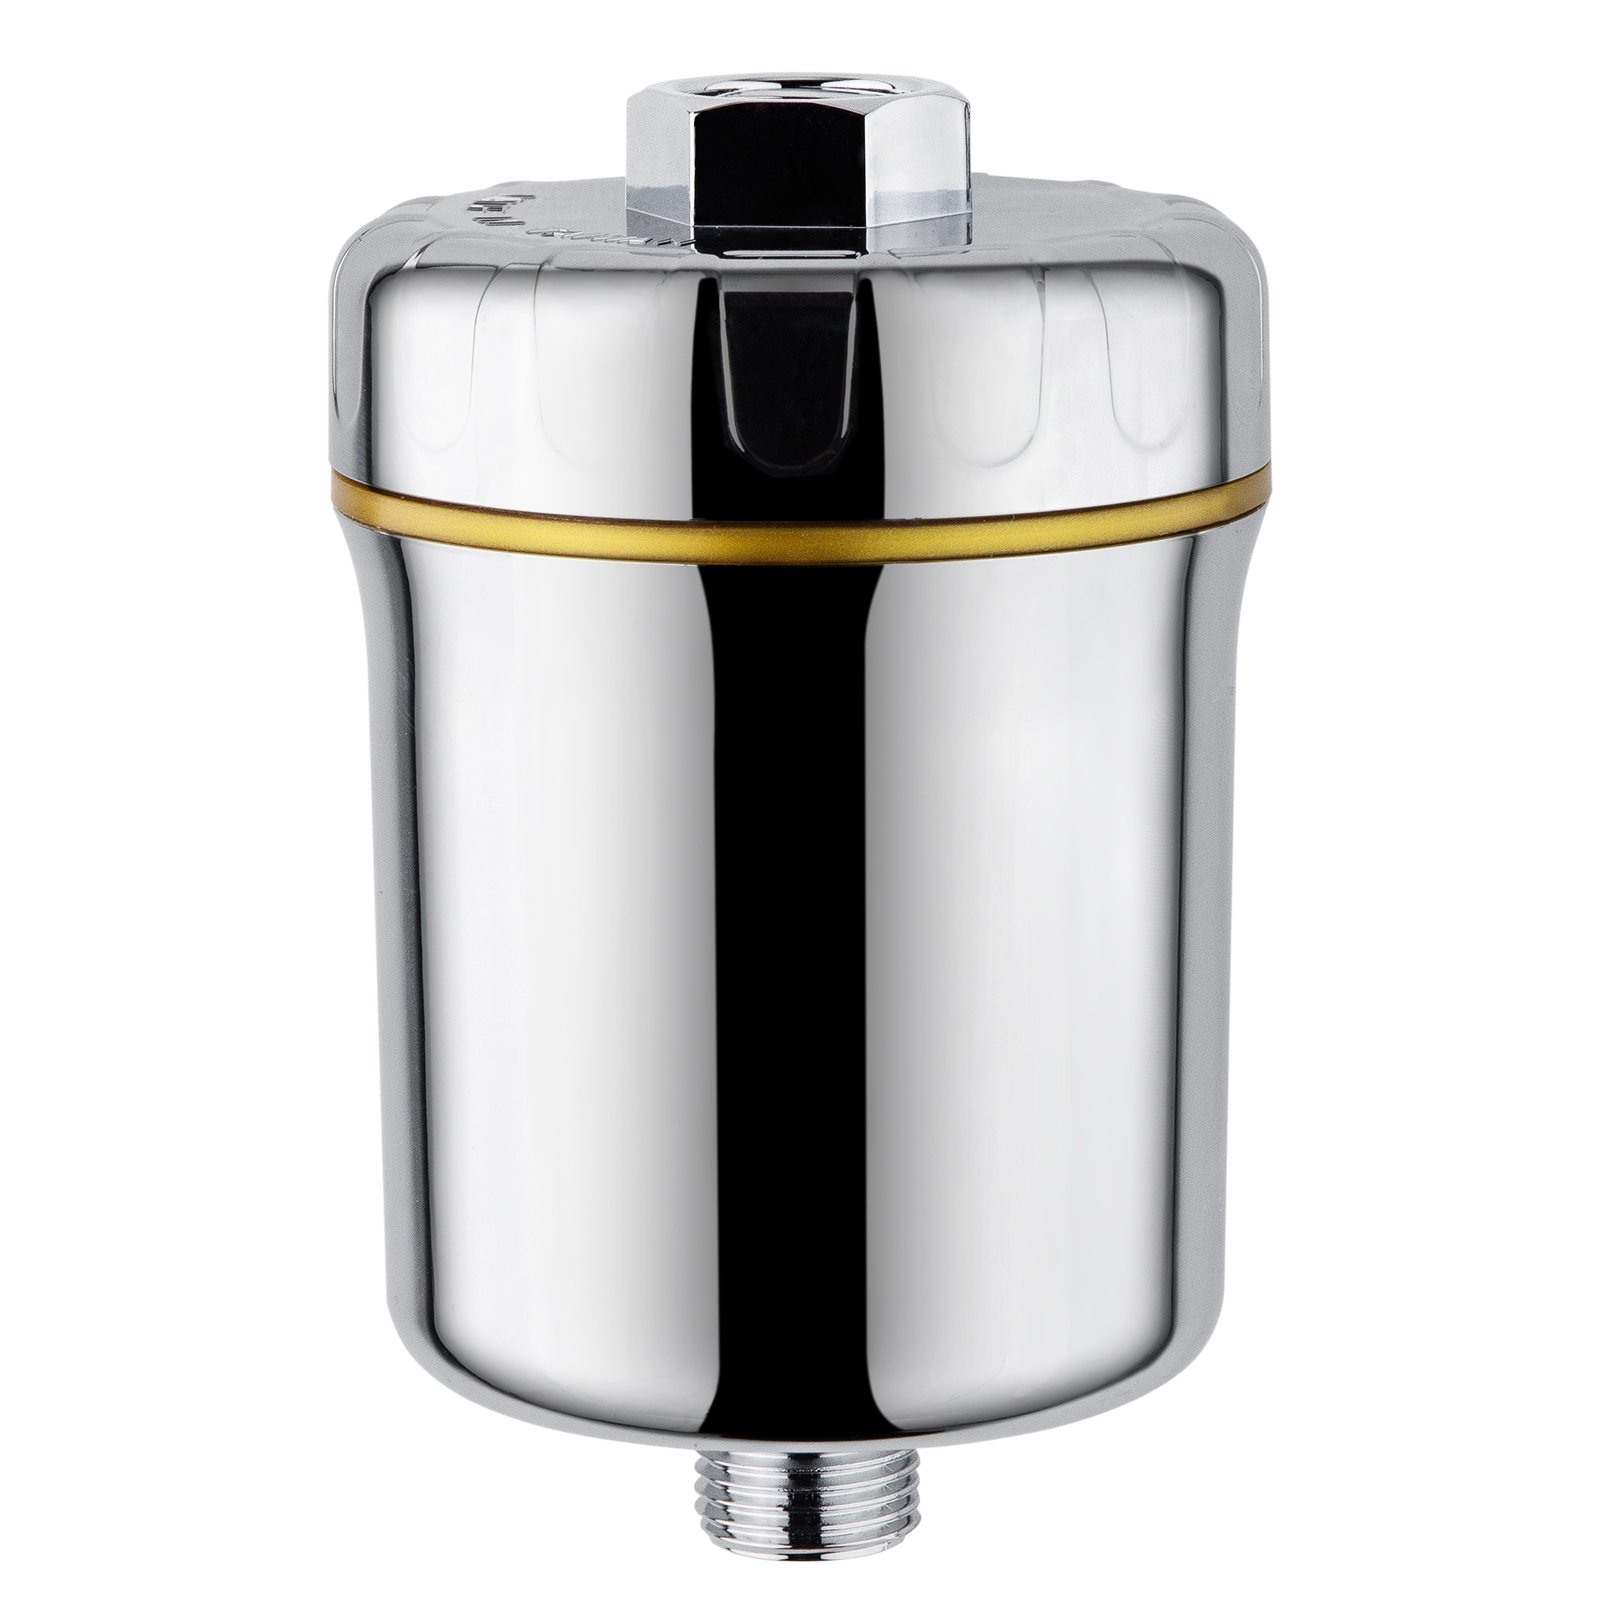 iSpring SF1S Stylish Multi-Stage High Output Shower Head Filter with Replaceable Cartridge to Remove Chlorine, Sediment, and Heavy Minerals by iSpring